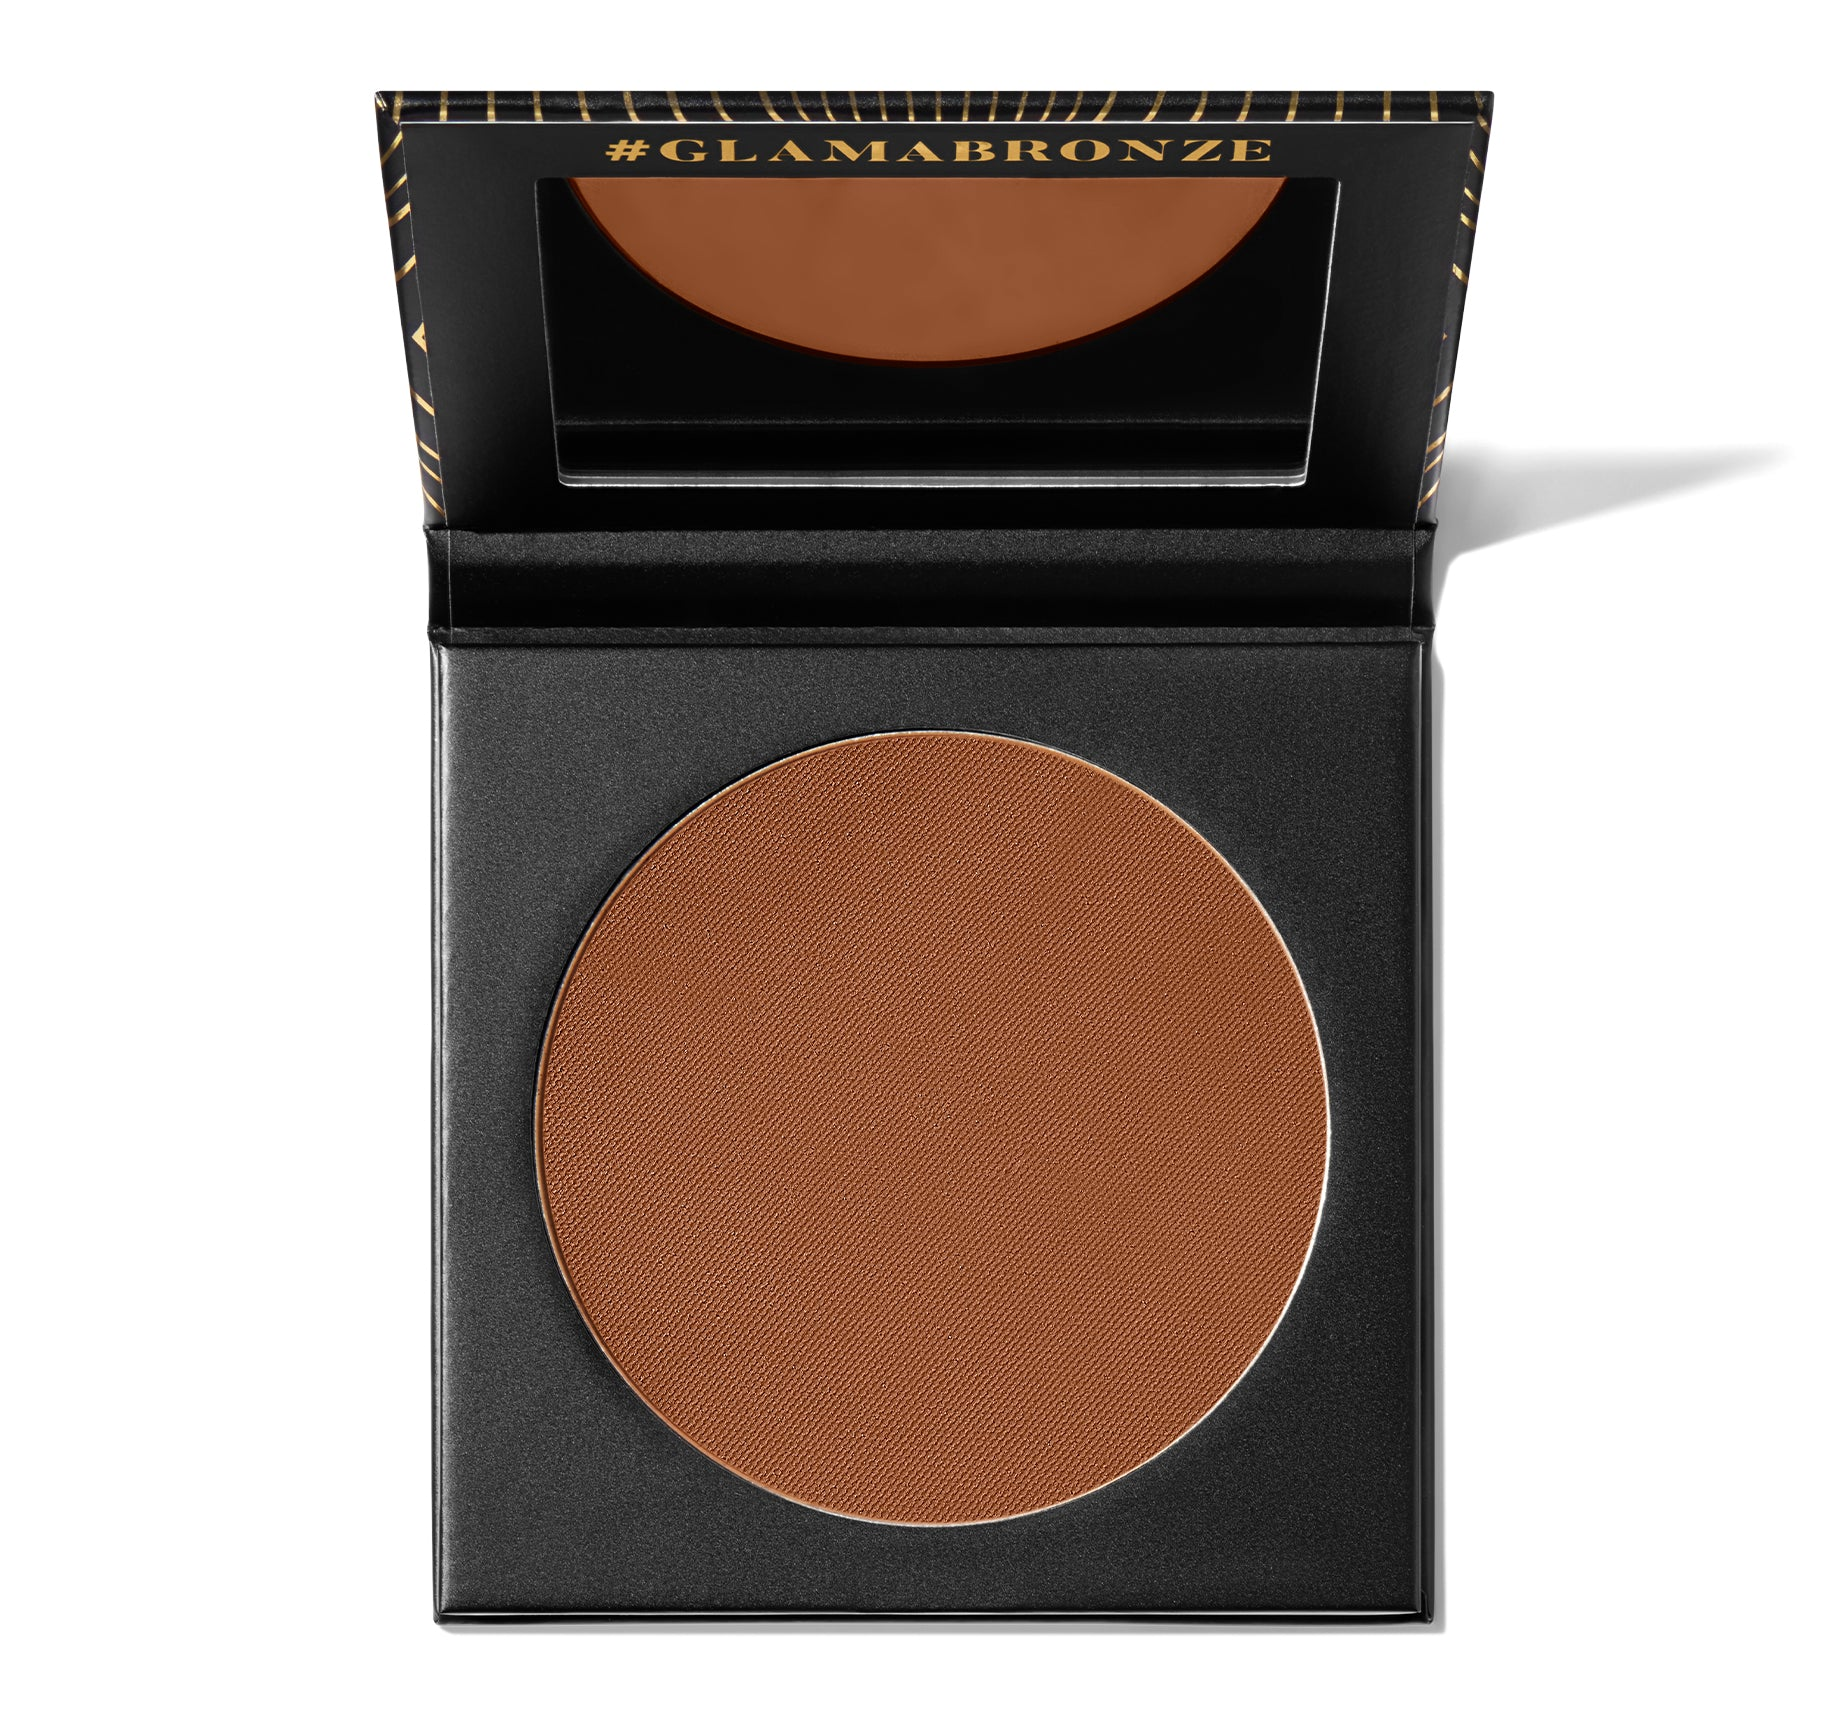 GLAMABRONZE FACE & BODY BRONZER - TRAILBLAZER, view larger image